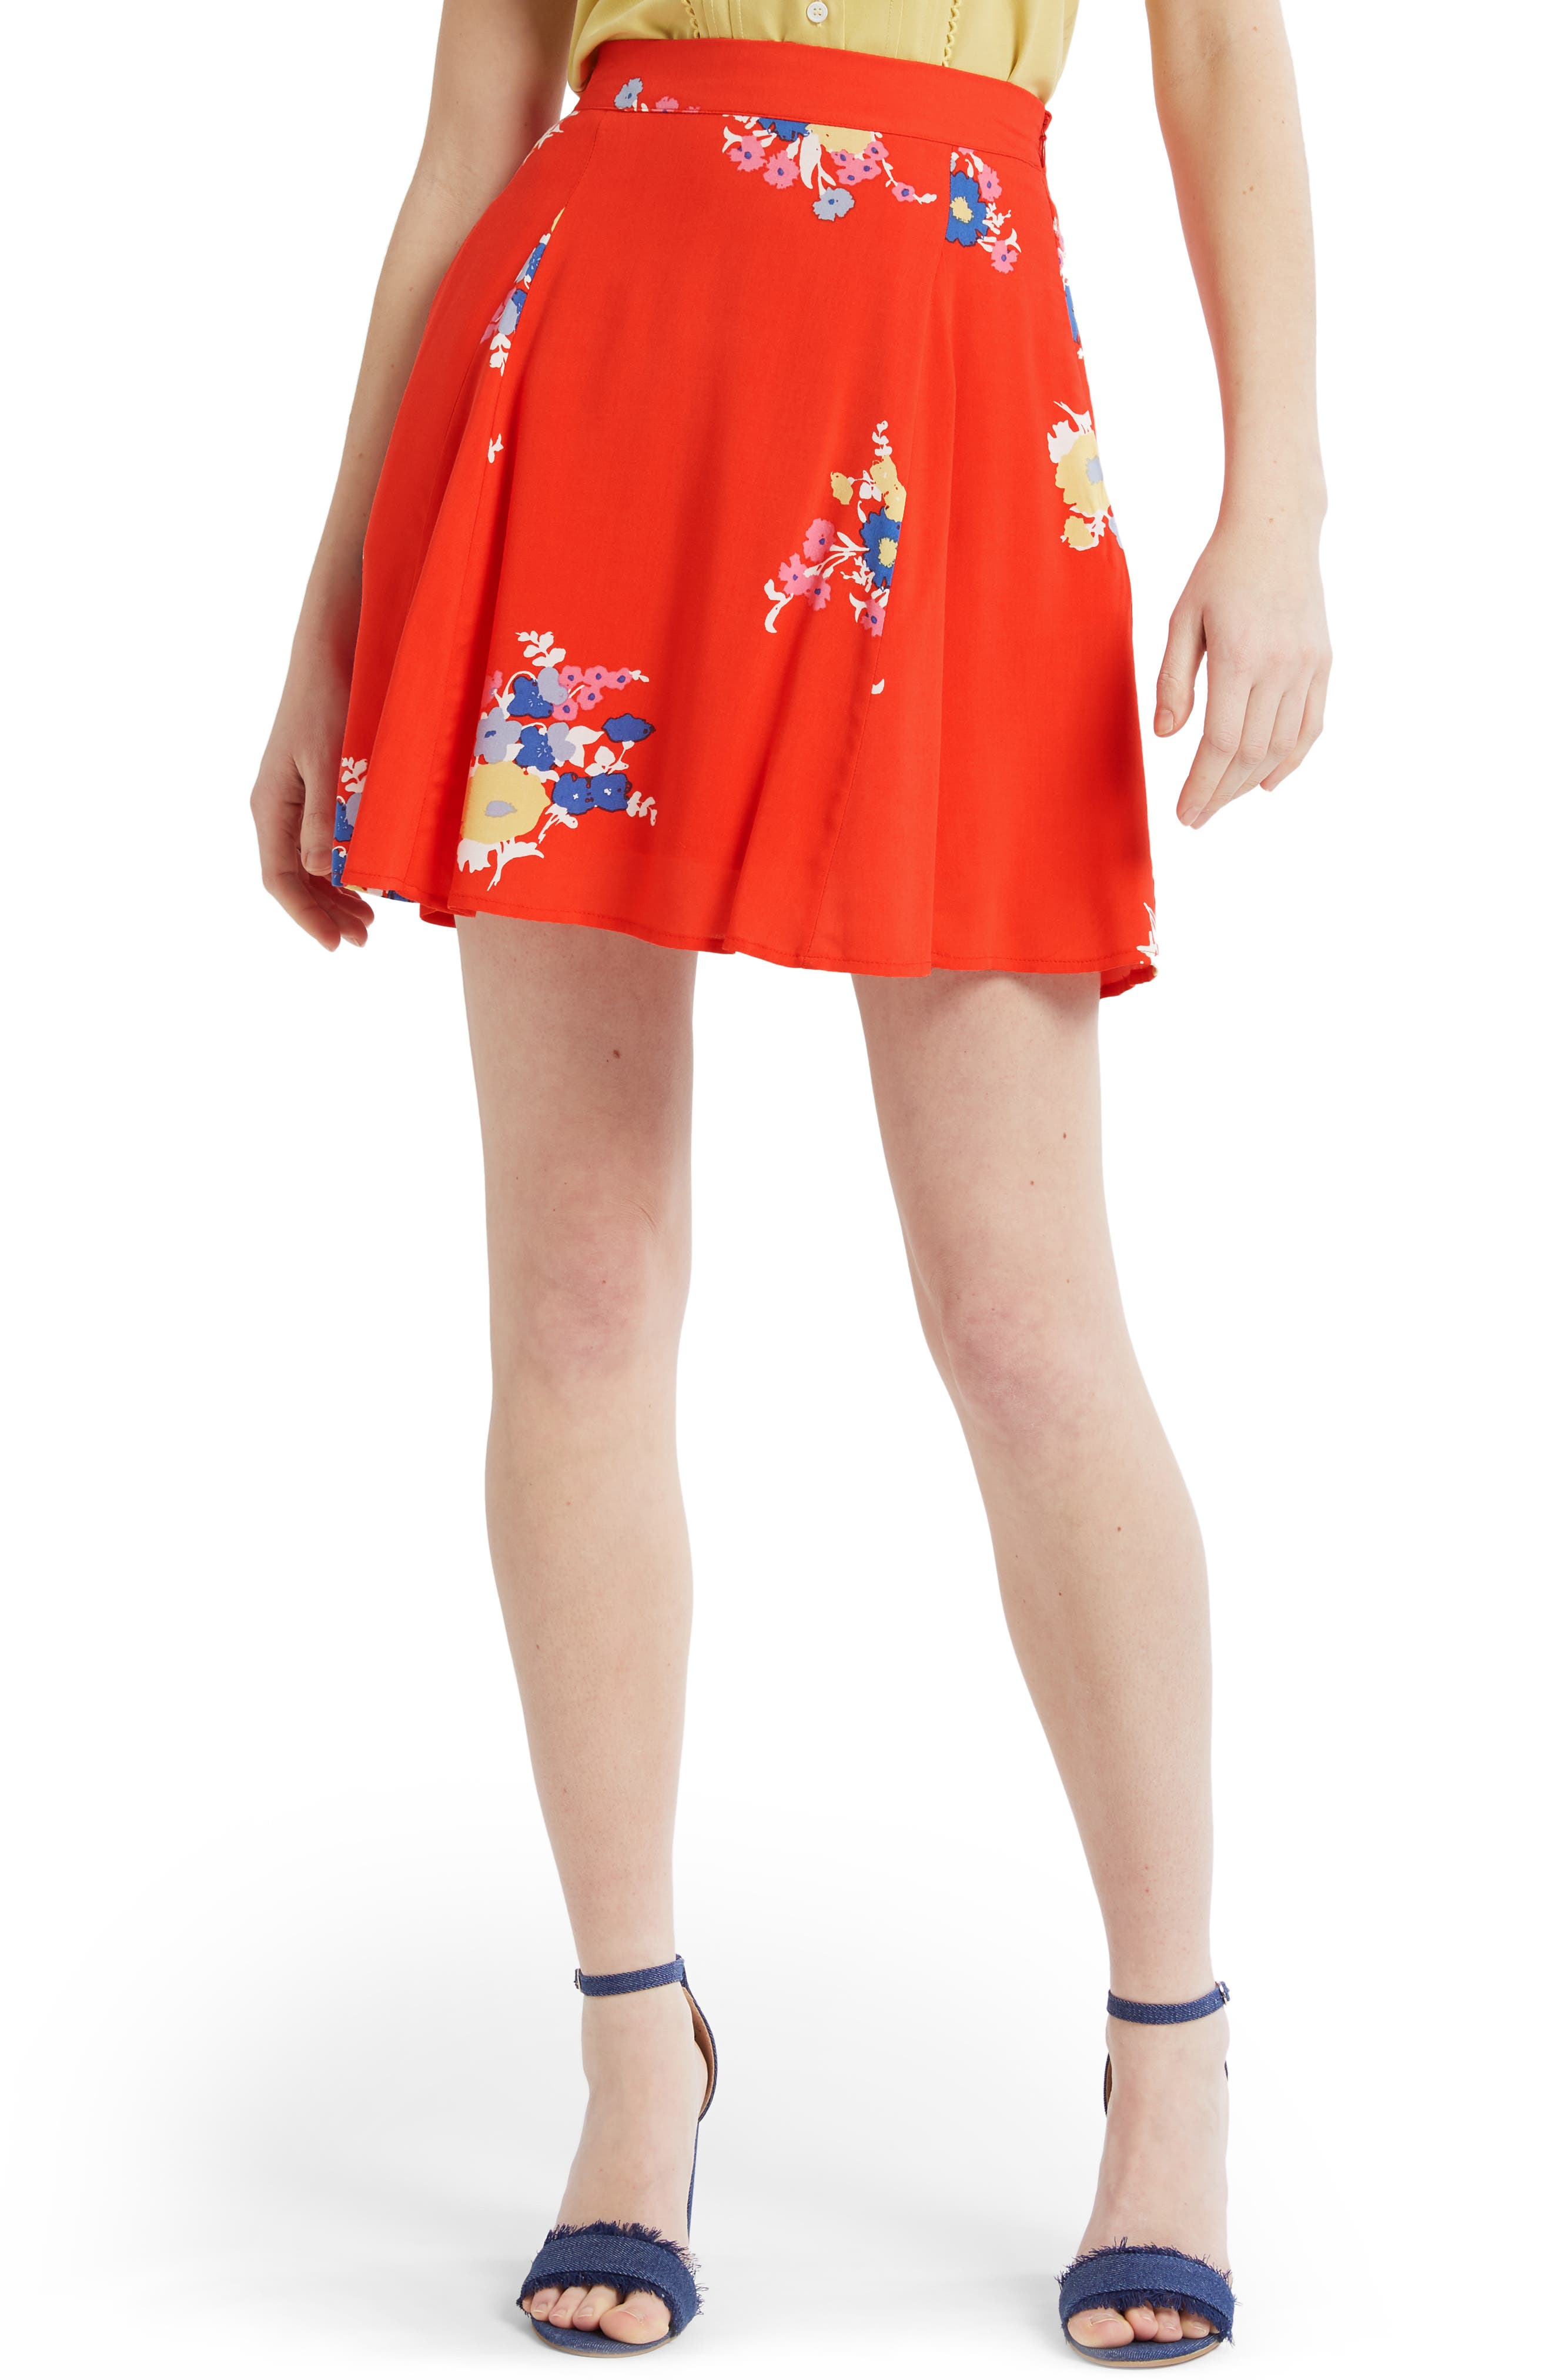 Modcloth Stay Sassy Swingy A-Line Skirt, Red